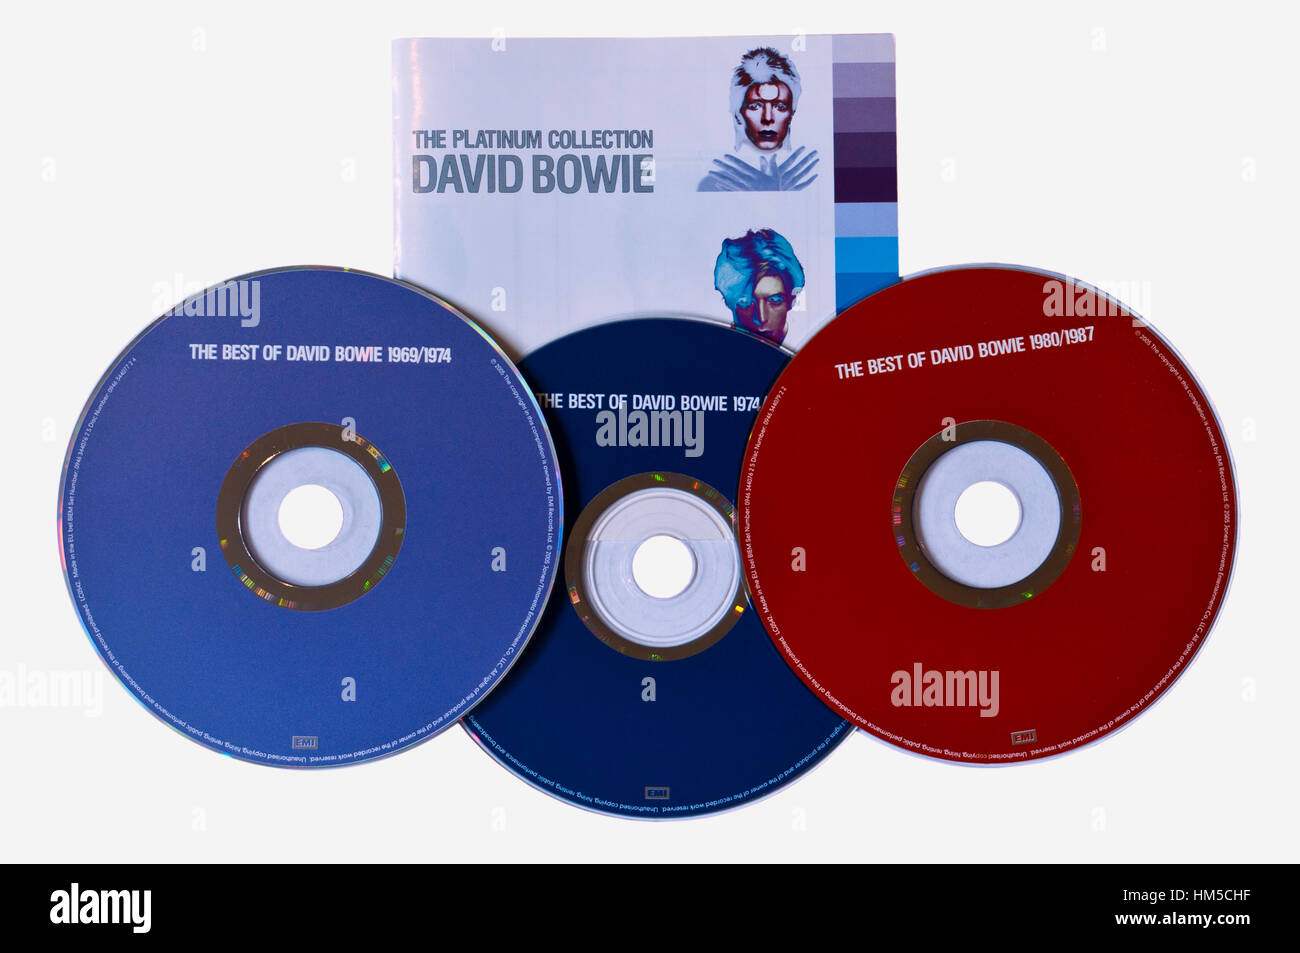 David Bowie The Platinum Collection Music Cds - Stock Image